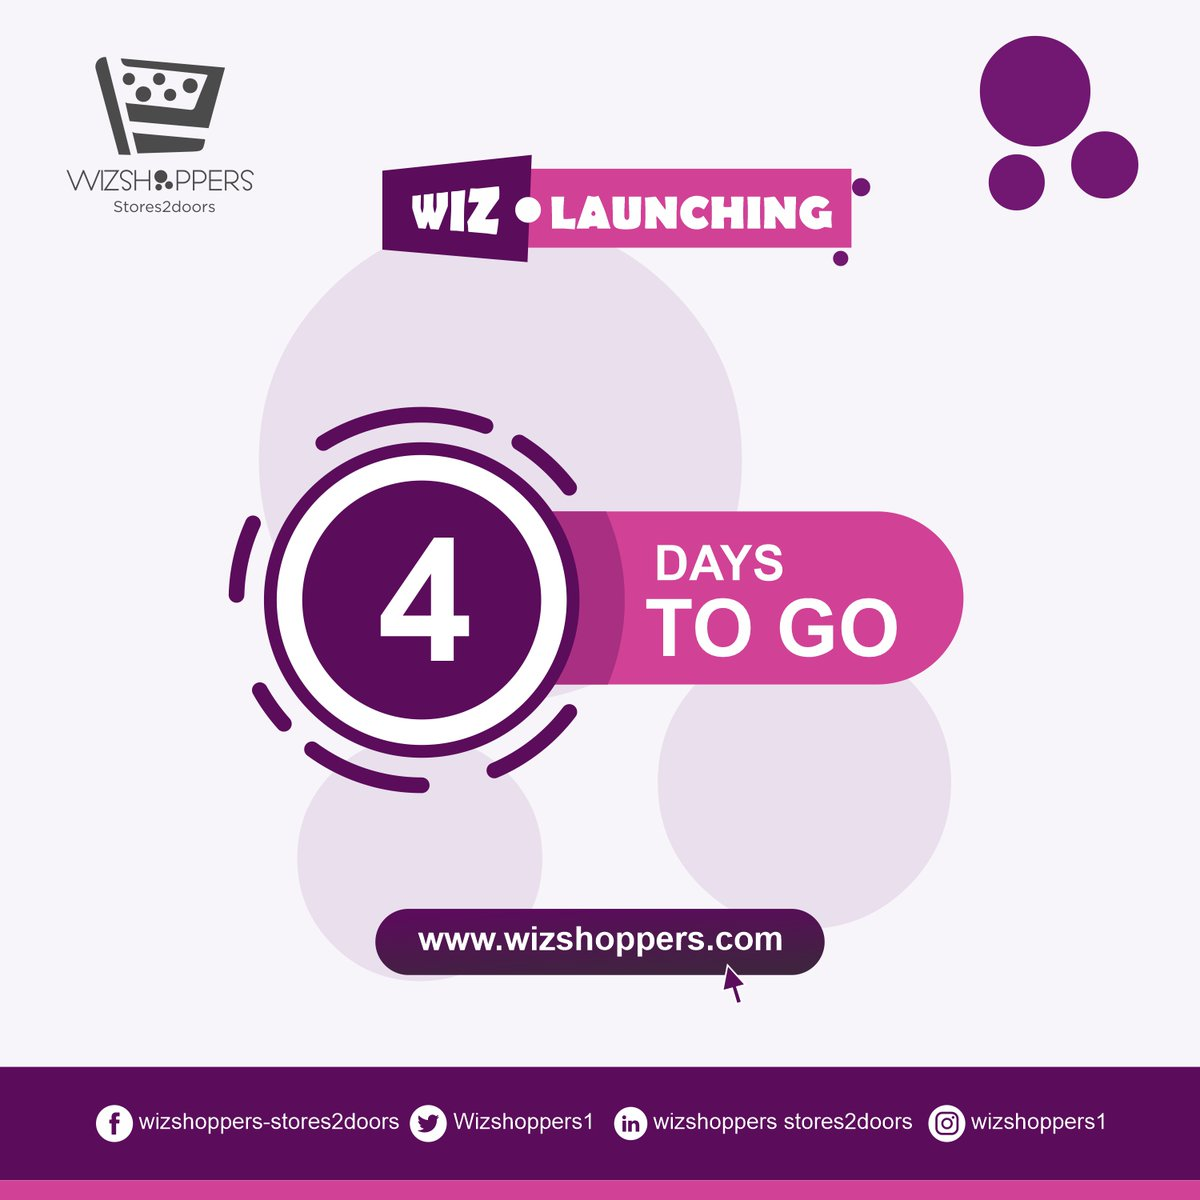 4 DAYS LEFT TO GO ARE YOU READY FOR WIZSHOPPERS LAUNCHING? . . . . . . . . . . #wizdomkey #wizshoppers #wizbizhub #onlineshopping #online #sales #sale #groceryshopping #businessowner #business #branding #brand #promote #ecommerce https://t.co/0eRag4dTHq